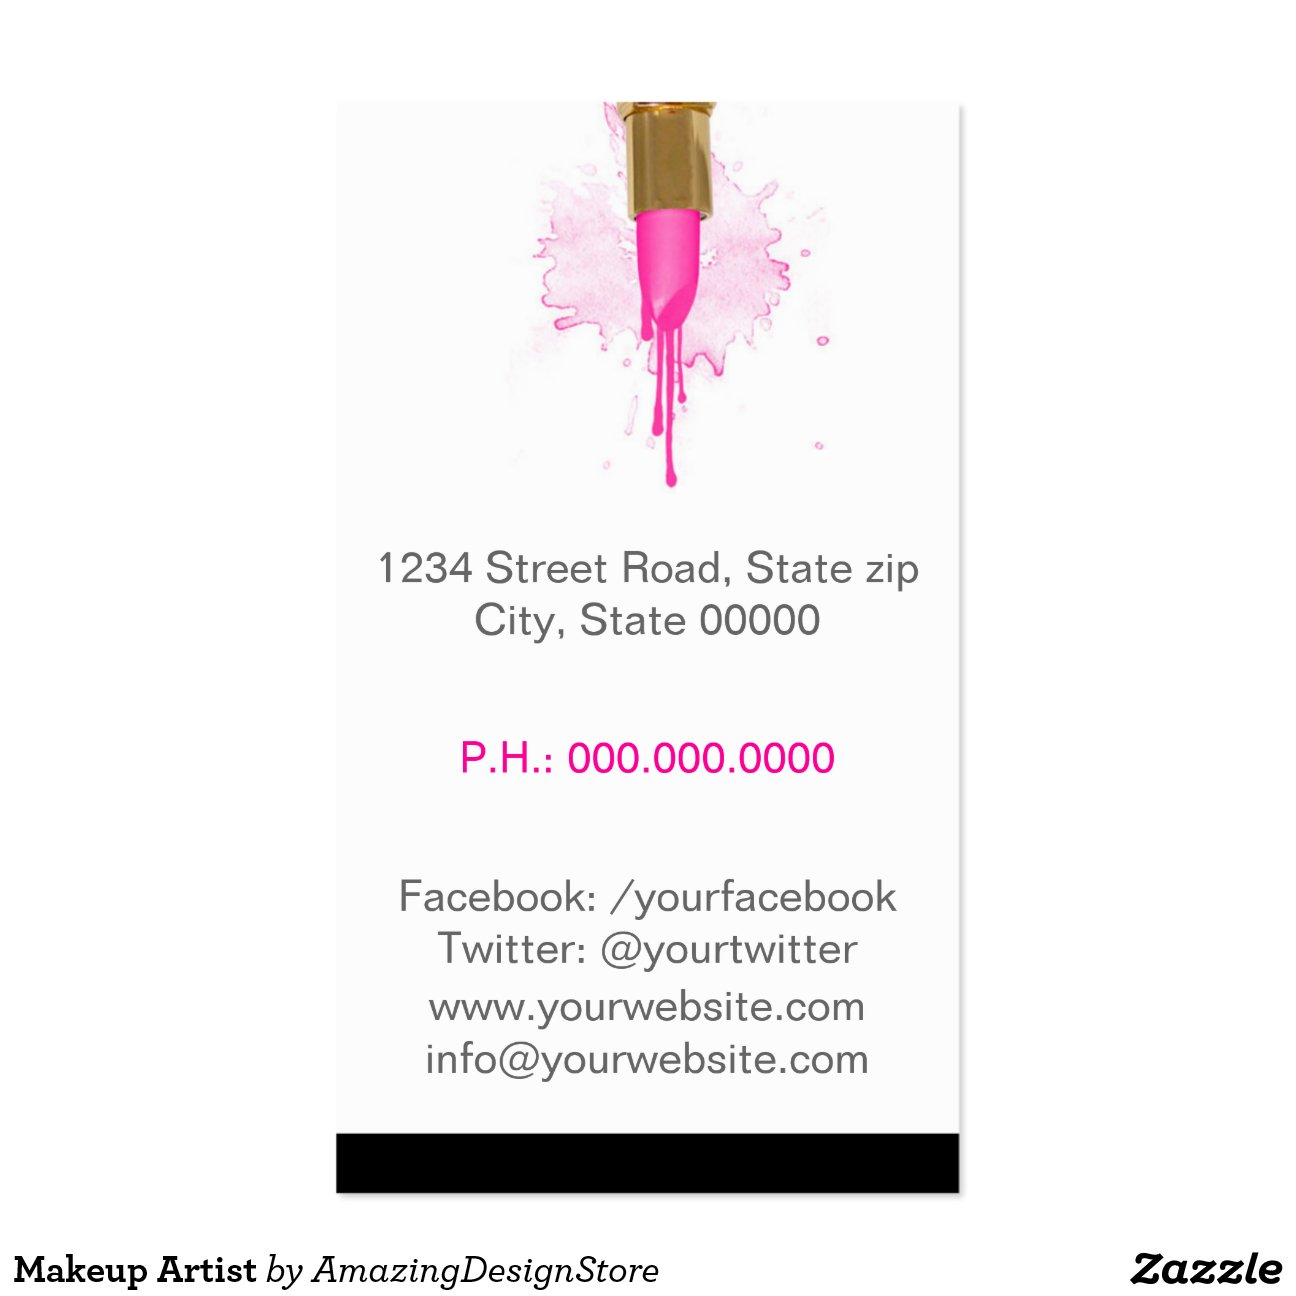 Makeup artist business cards templates mandegarfo makeup artist business cards templates reheart Image collections